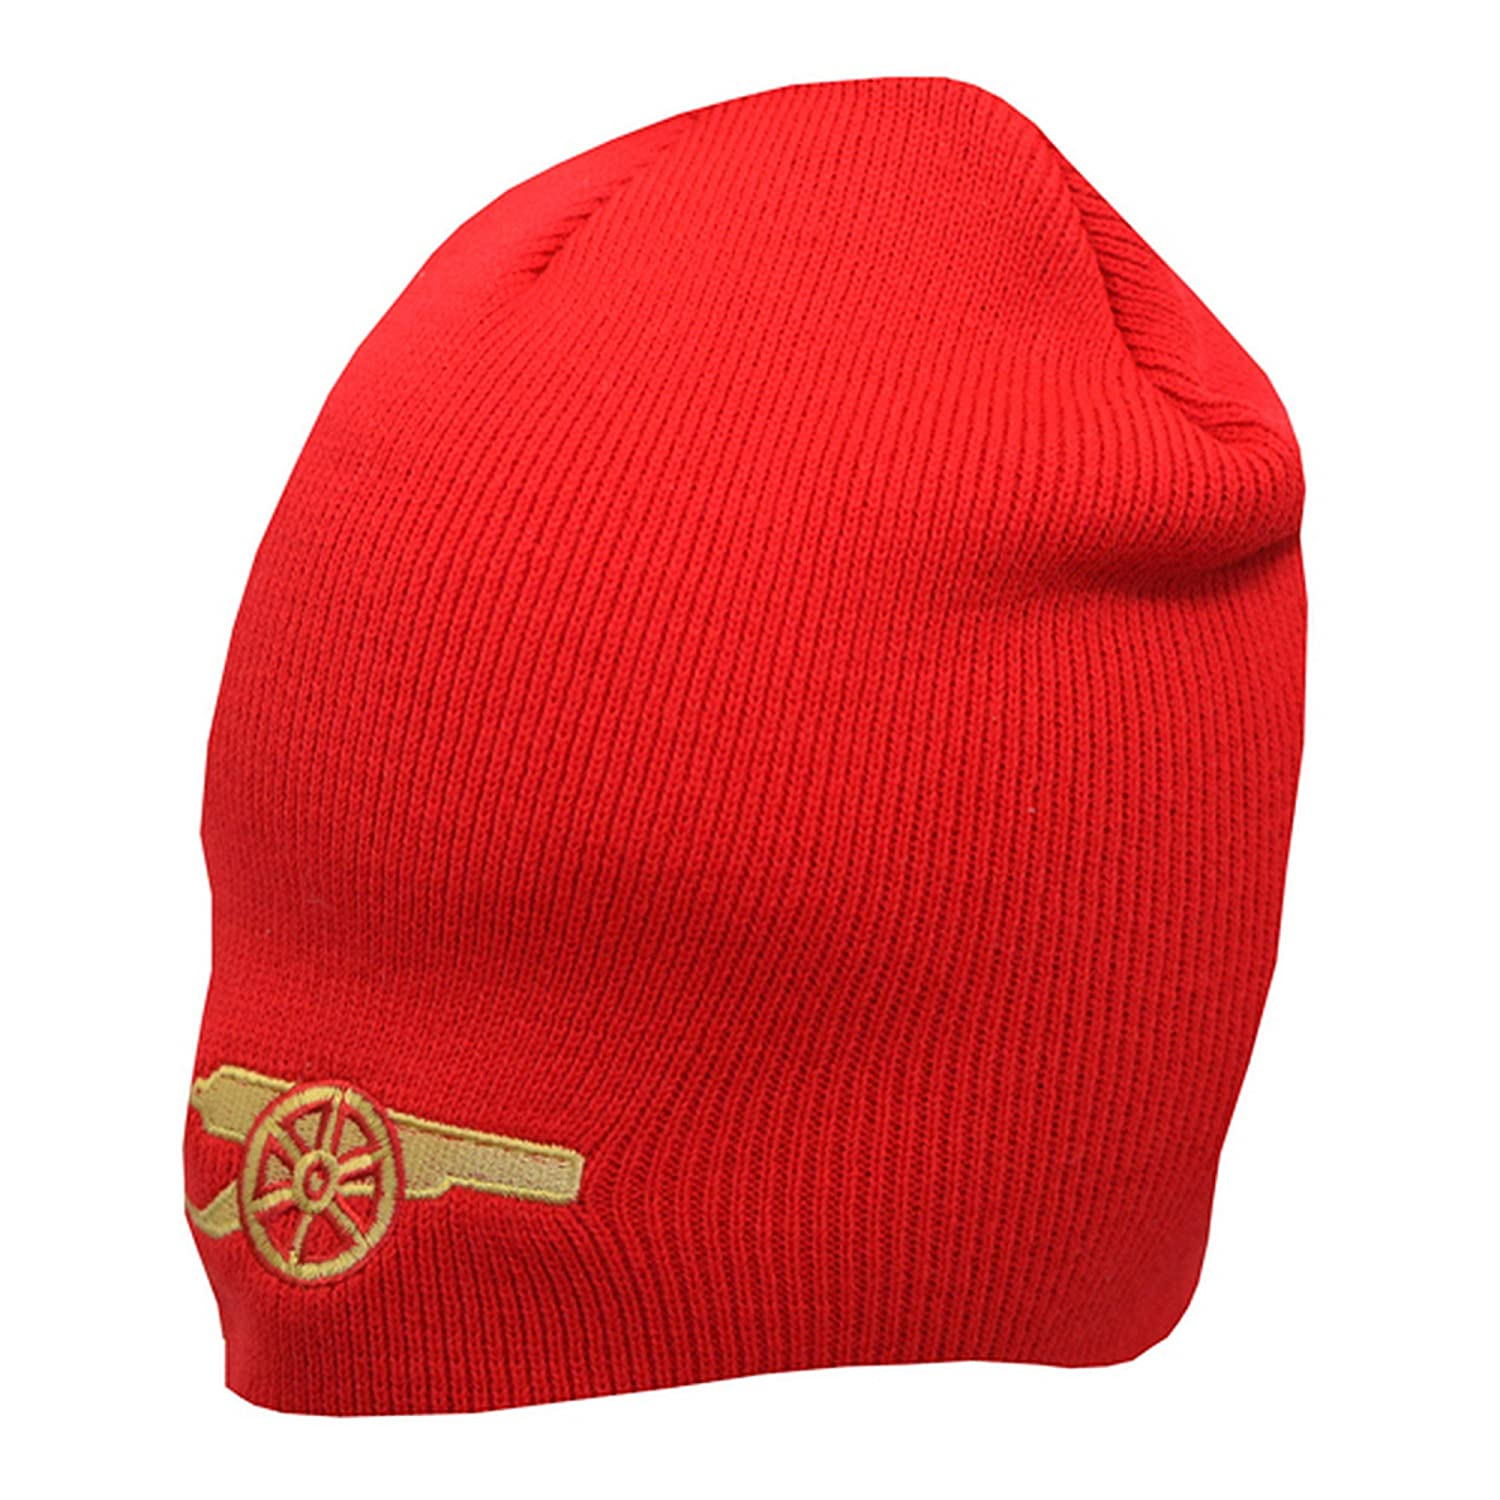 6a66333a547 Amazon.com  Arsenal FC Official Gunners Design Knitted Beanie Hat (One  Size) (Red)  Clothing